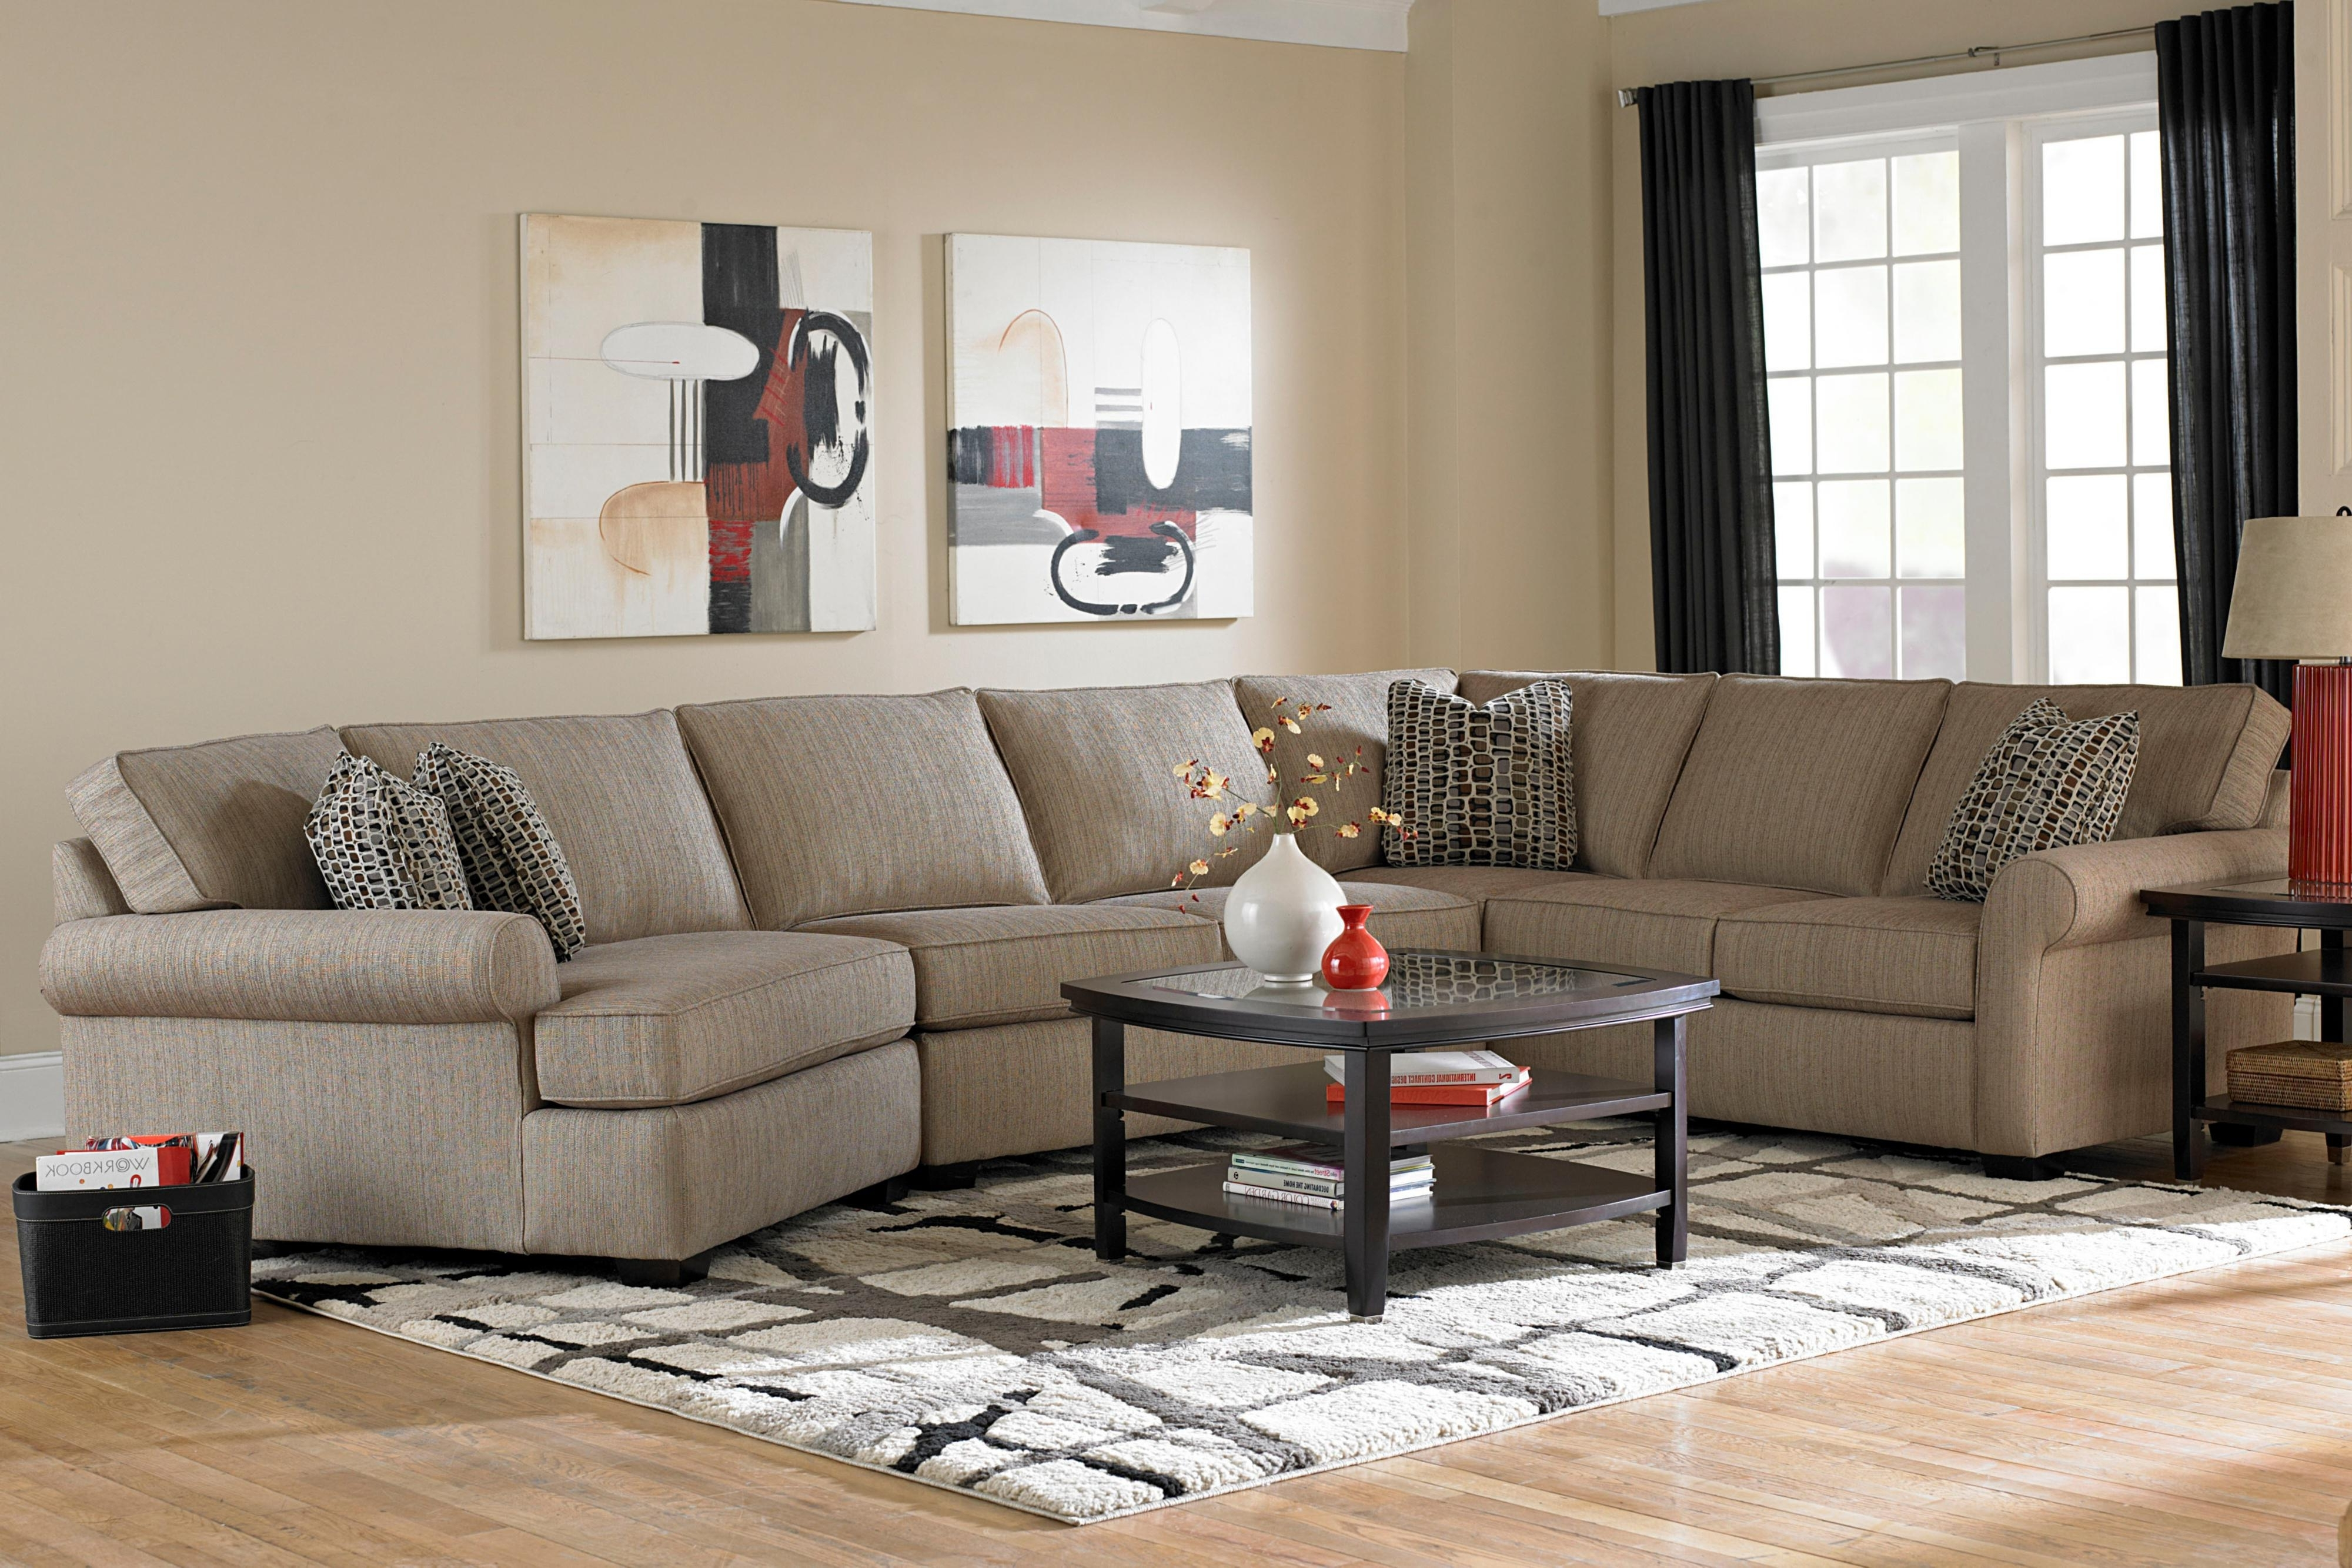 Virginia Sectional Sofas Within Preferred Broyhill Furniture Ethan Transitional Sectional Sofa With Right (View 15 of 15)